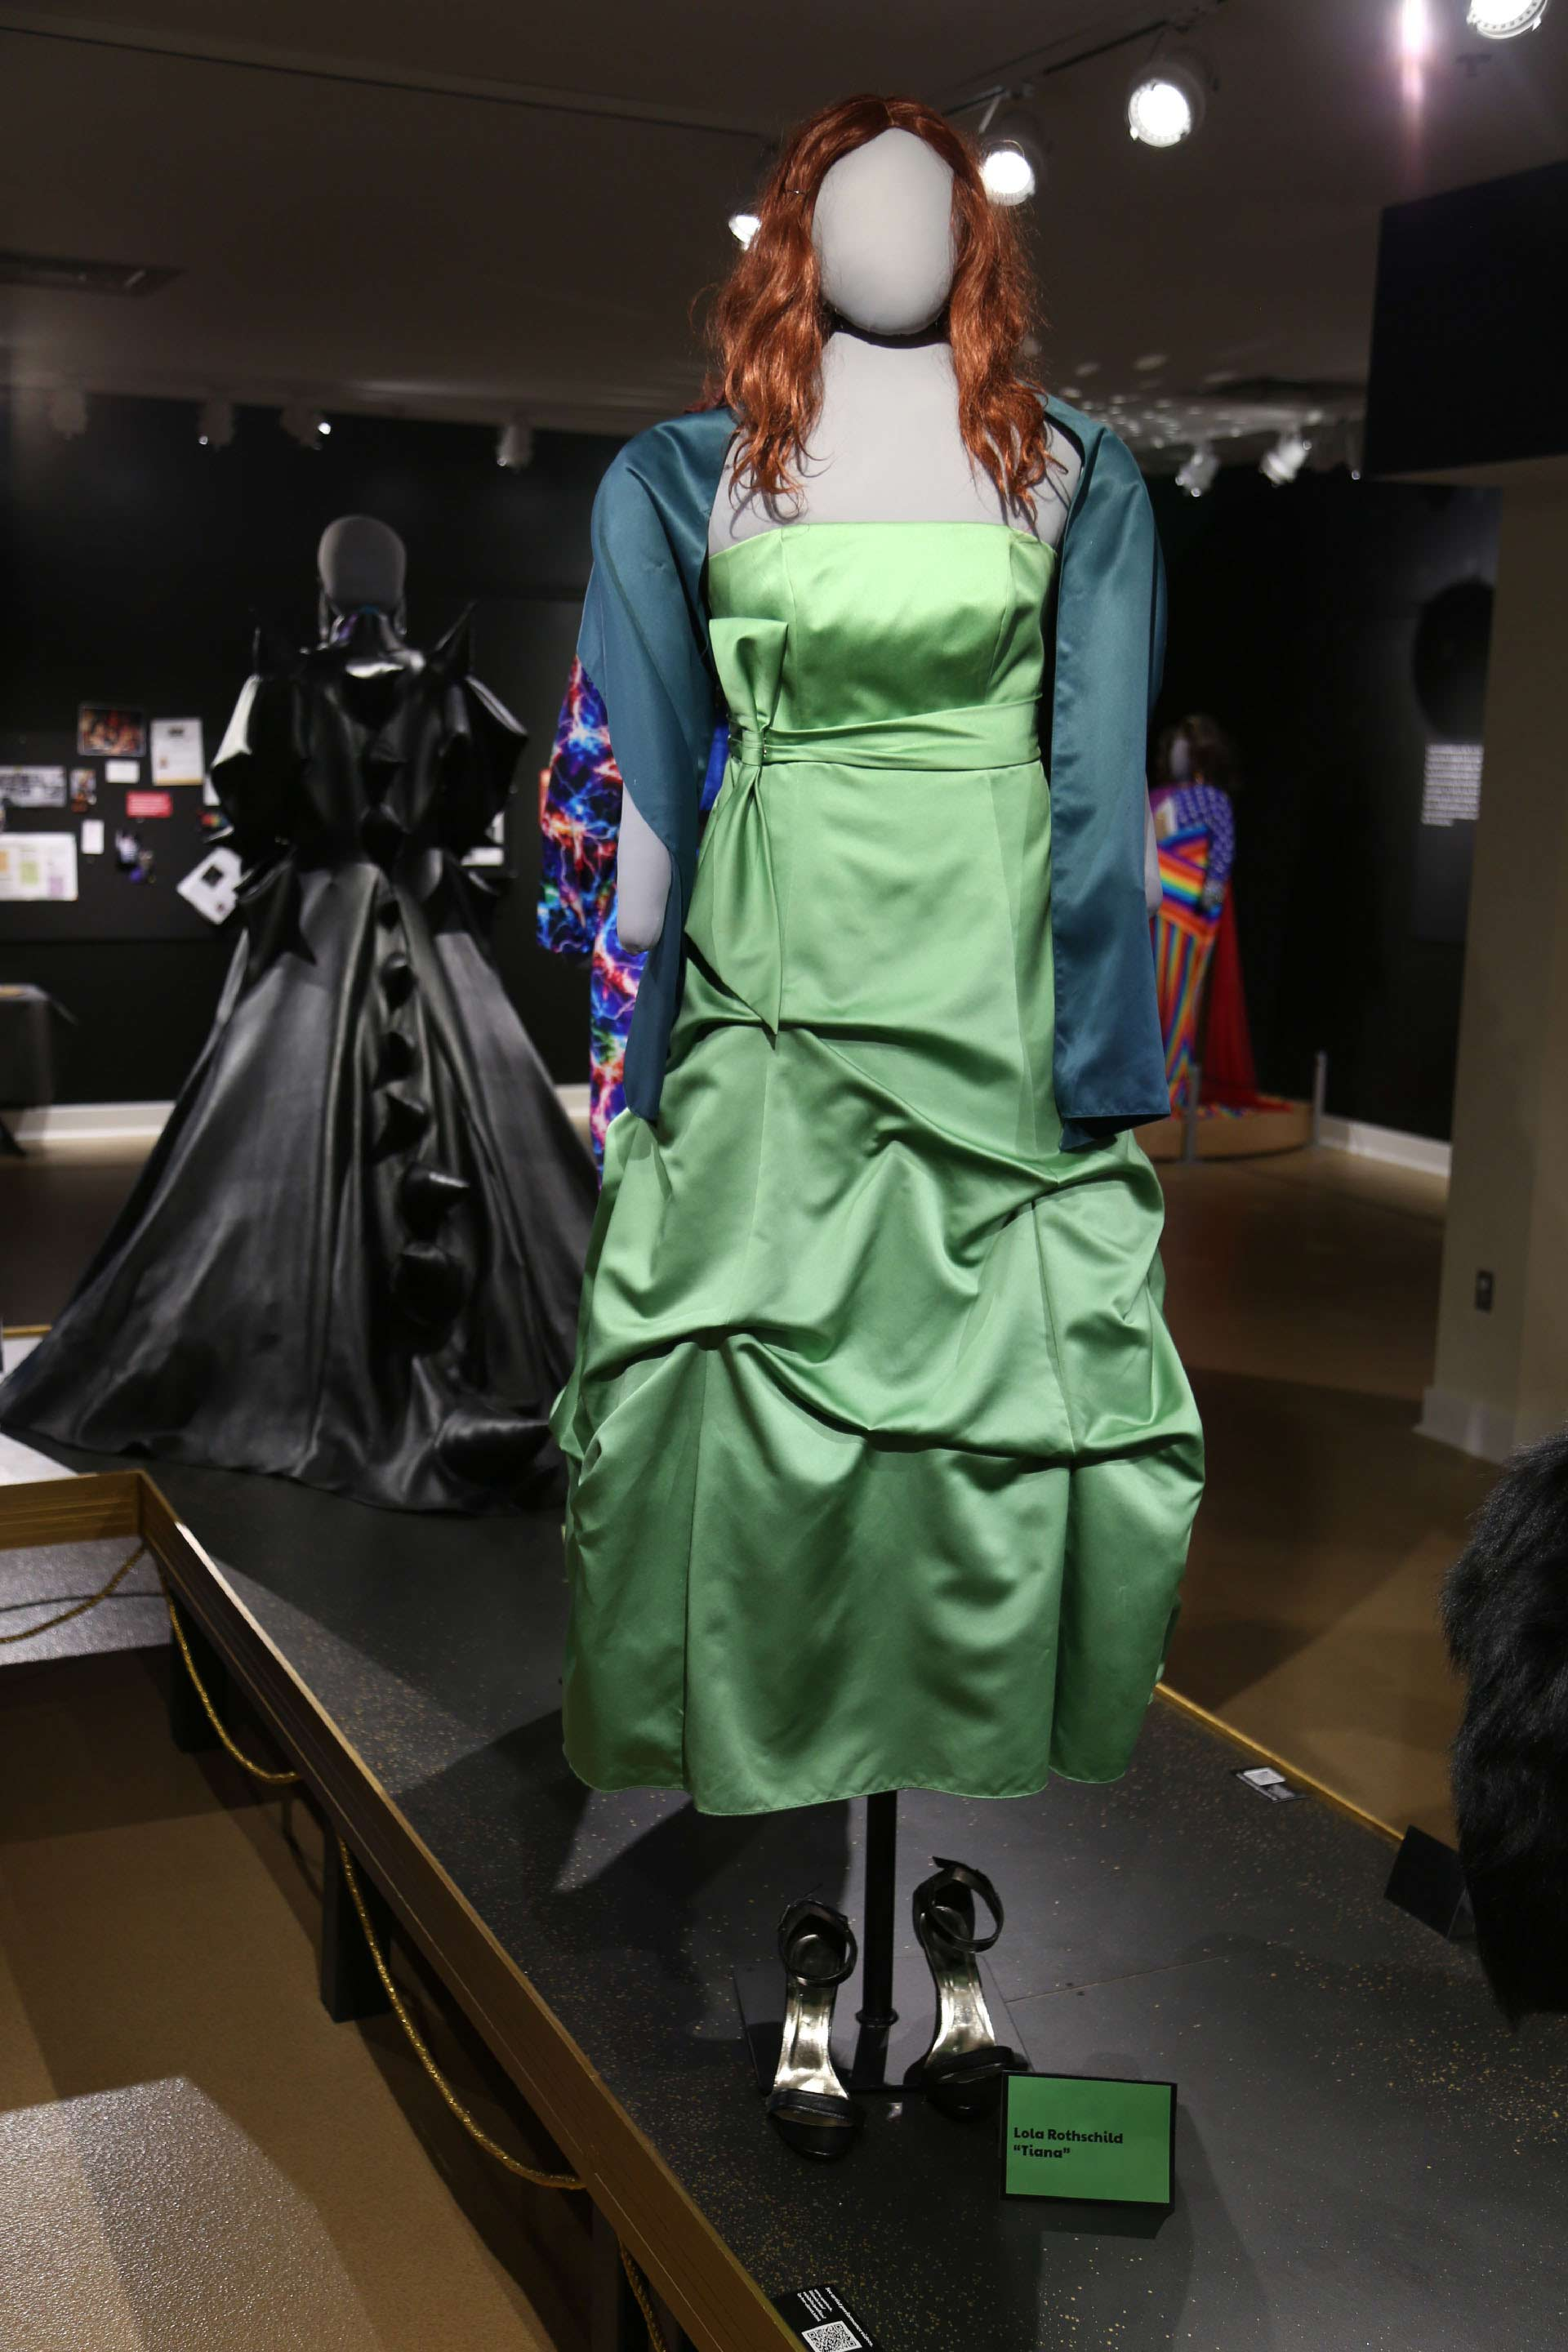 mannequin in long green dress